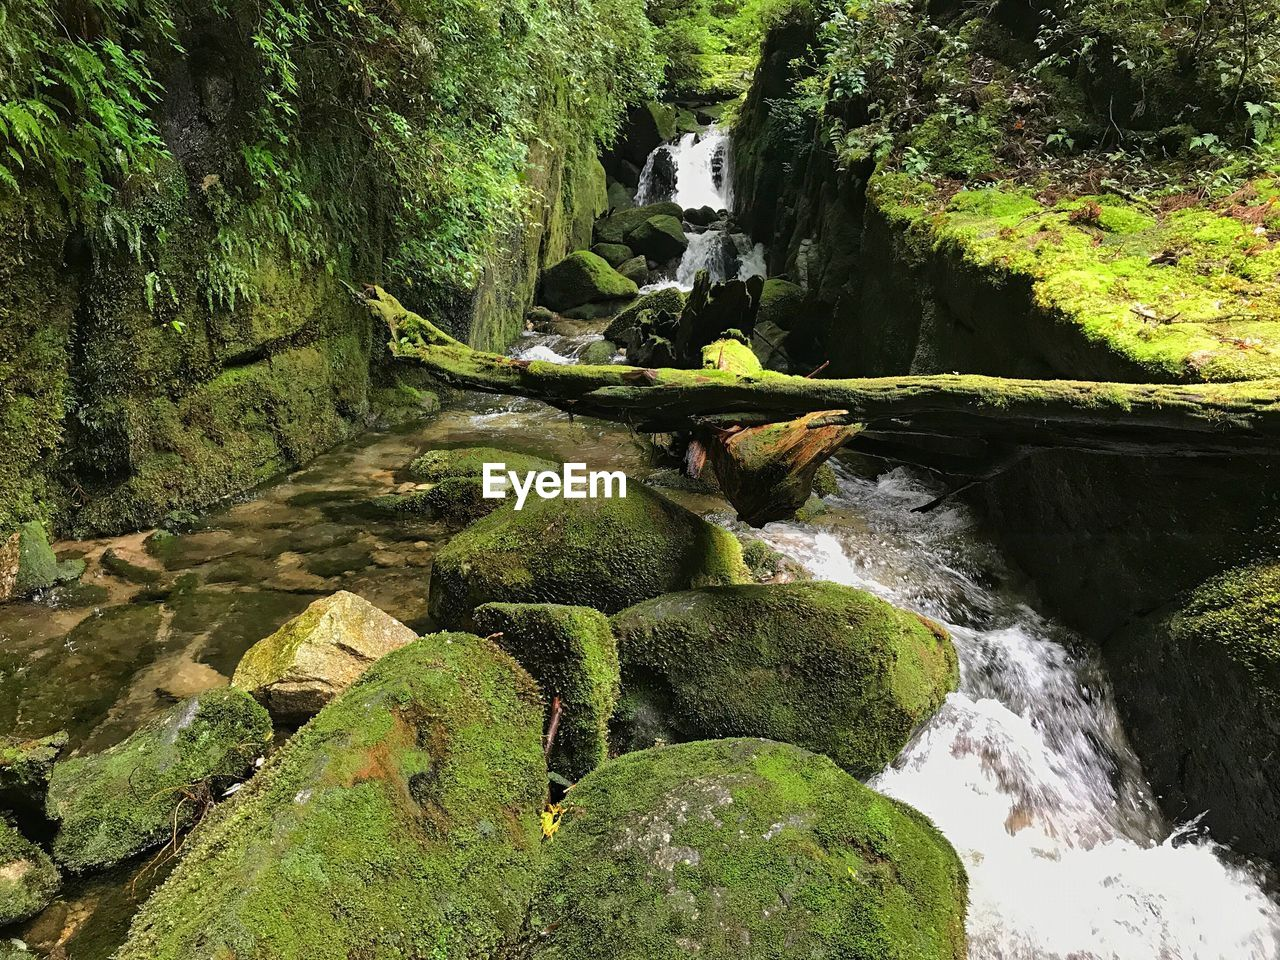 waterfall, nature, forest, rock - object, beauty in nature, green color, motion, water, tranquil scene, outdoors, no people, tranquility, moss, day, river, tree, scenics, growth